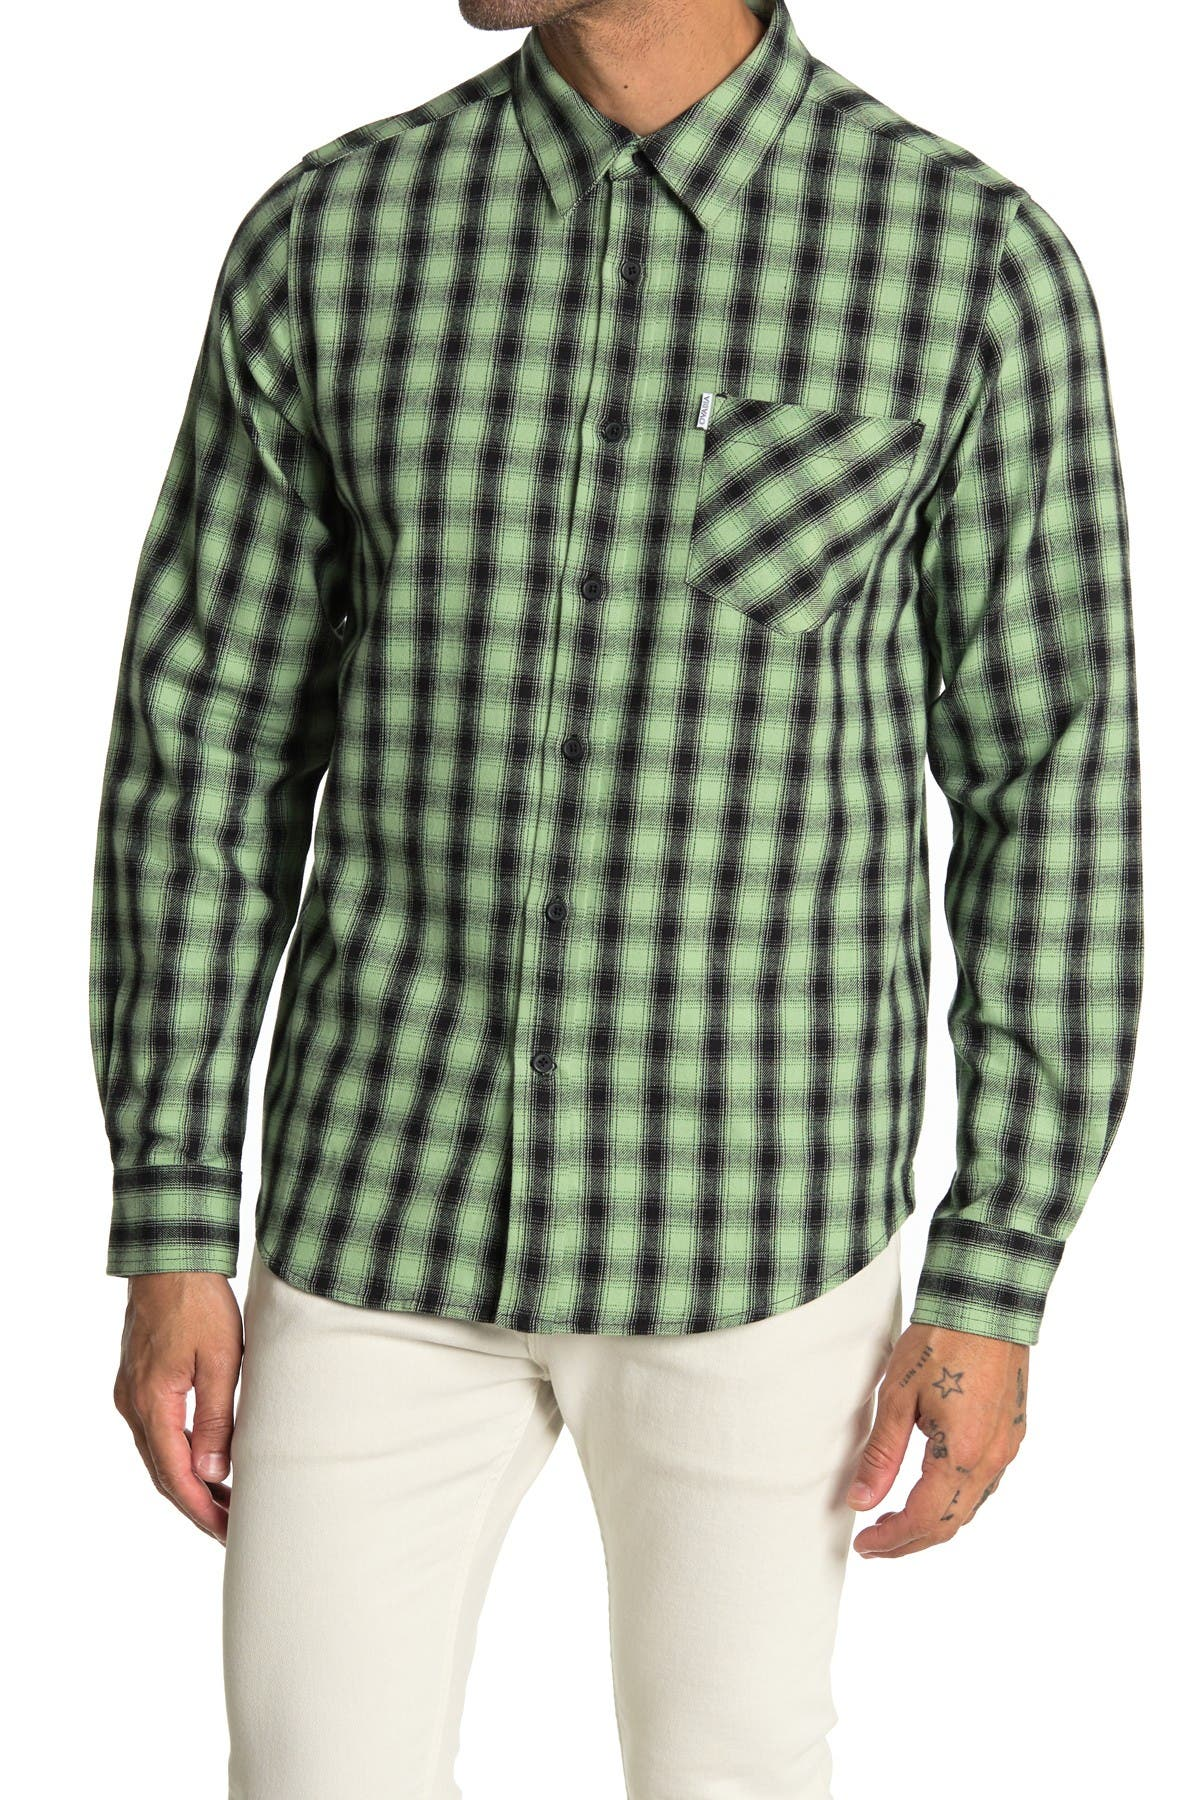 Image of OVADIA AND SONS Max Plaid Regular Fit Shirt